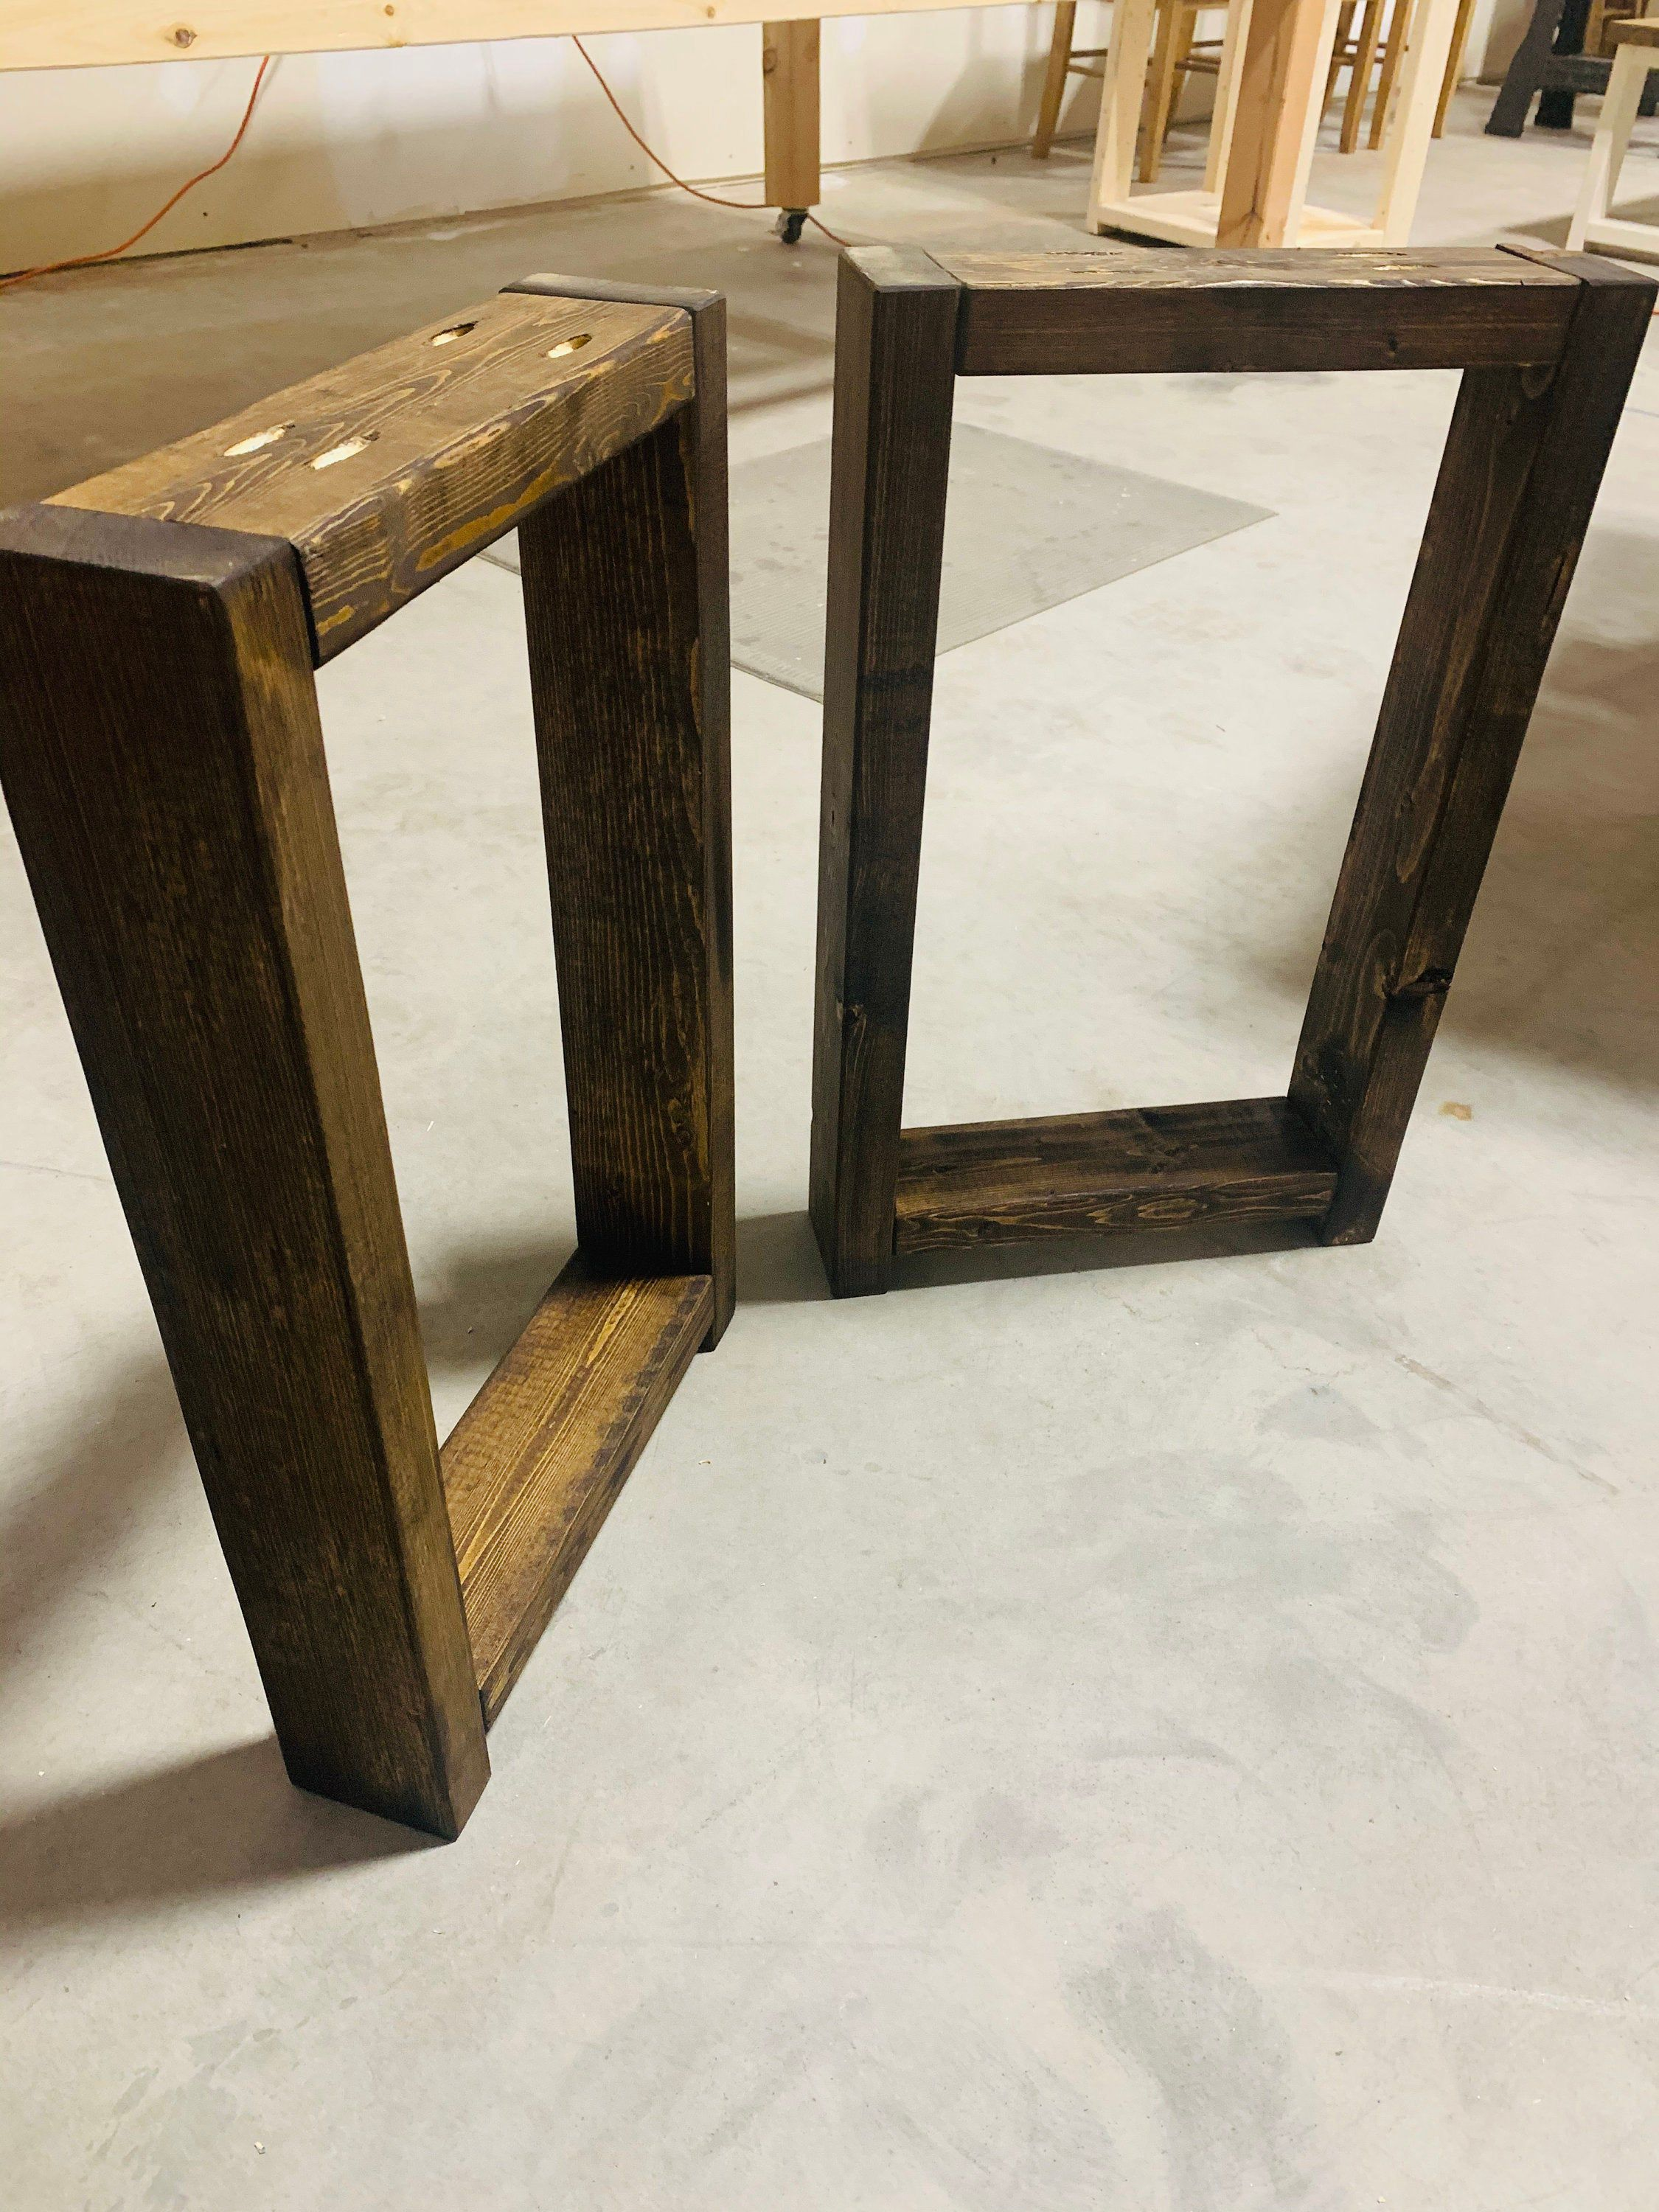 Excited To Share This Item From My Etsy Shop Rustic Tall Farmhouse Square Bench Legs Dark Walnut Diy Bench Legs Ra Wood Table Legs Diy Table Legs Diy Bench [ 3000 x 2250 Pixel ]